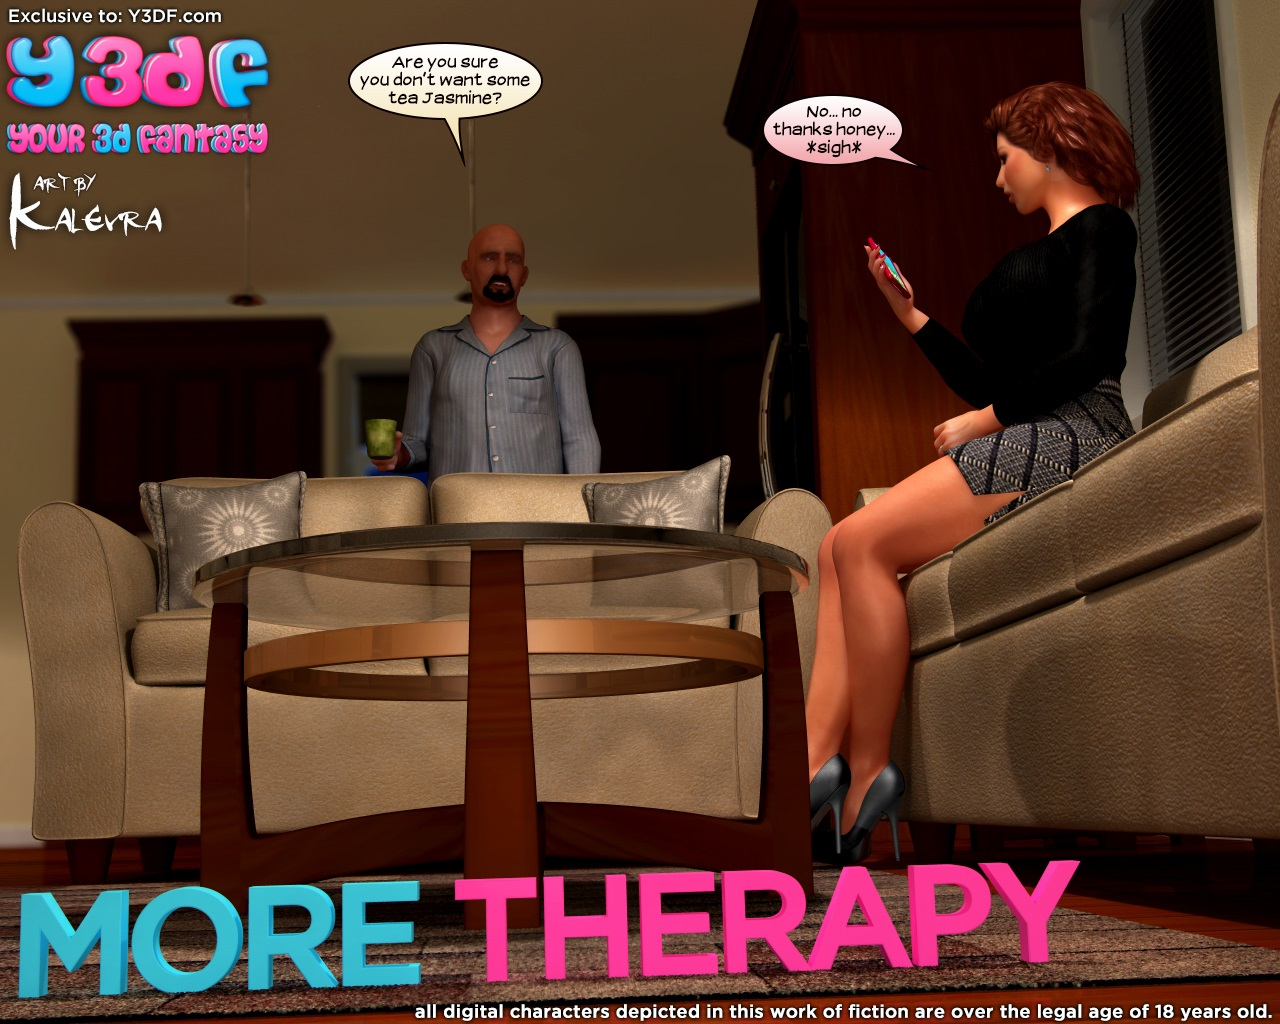 Y3DF- More Therapy image 1